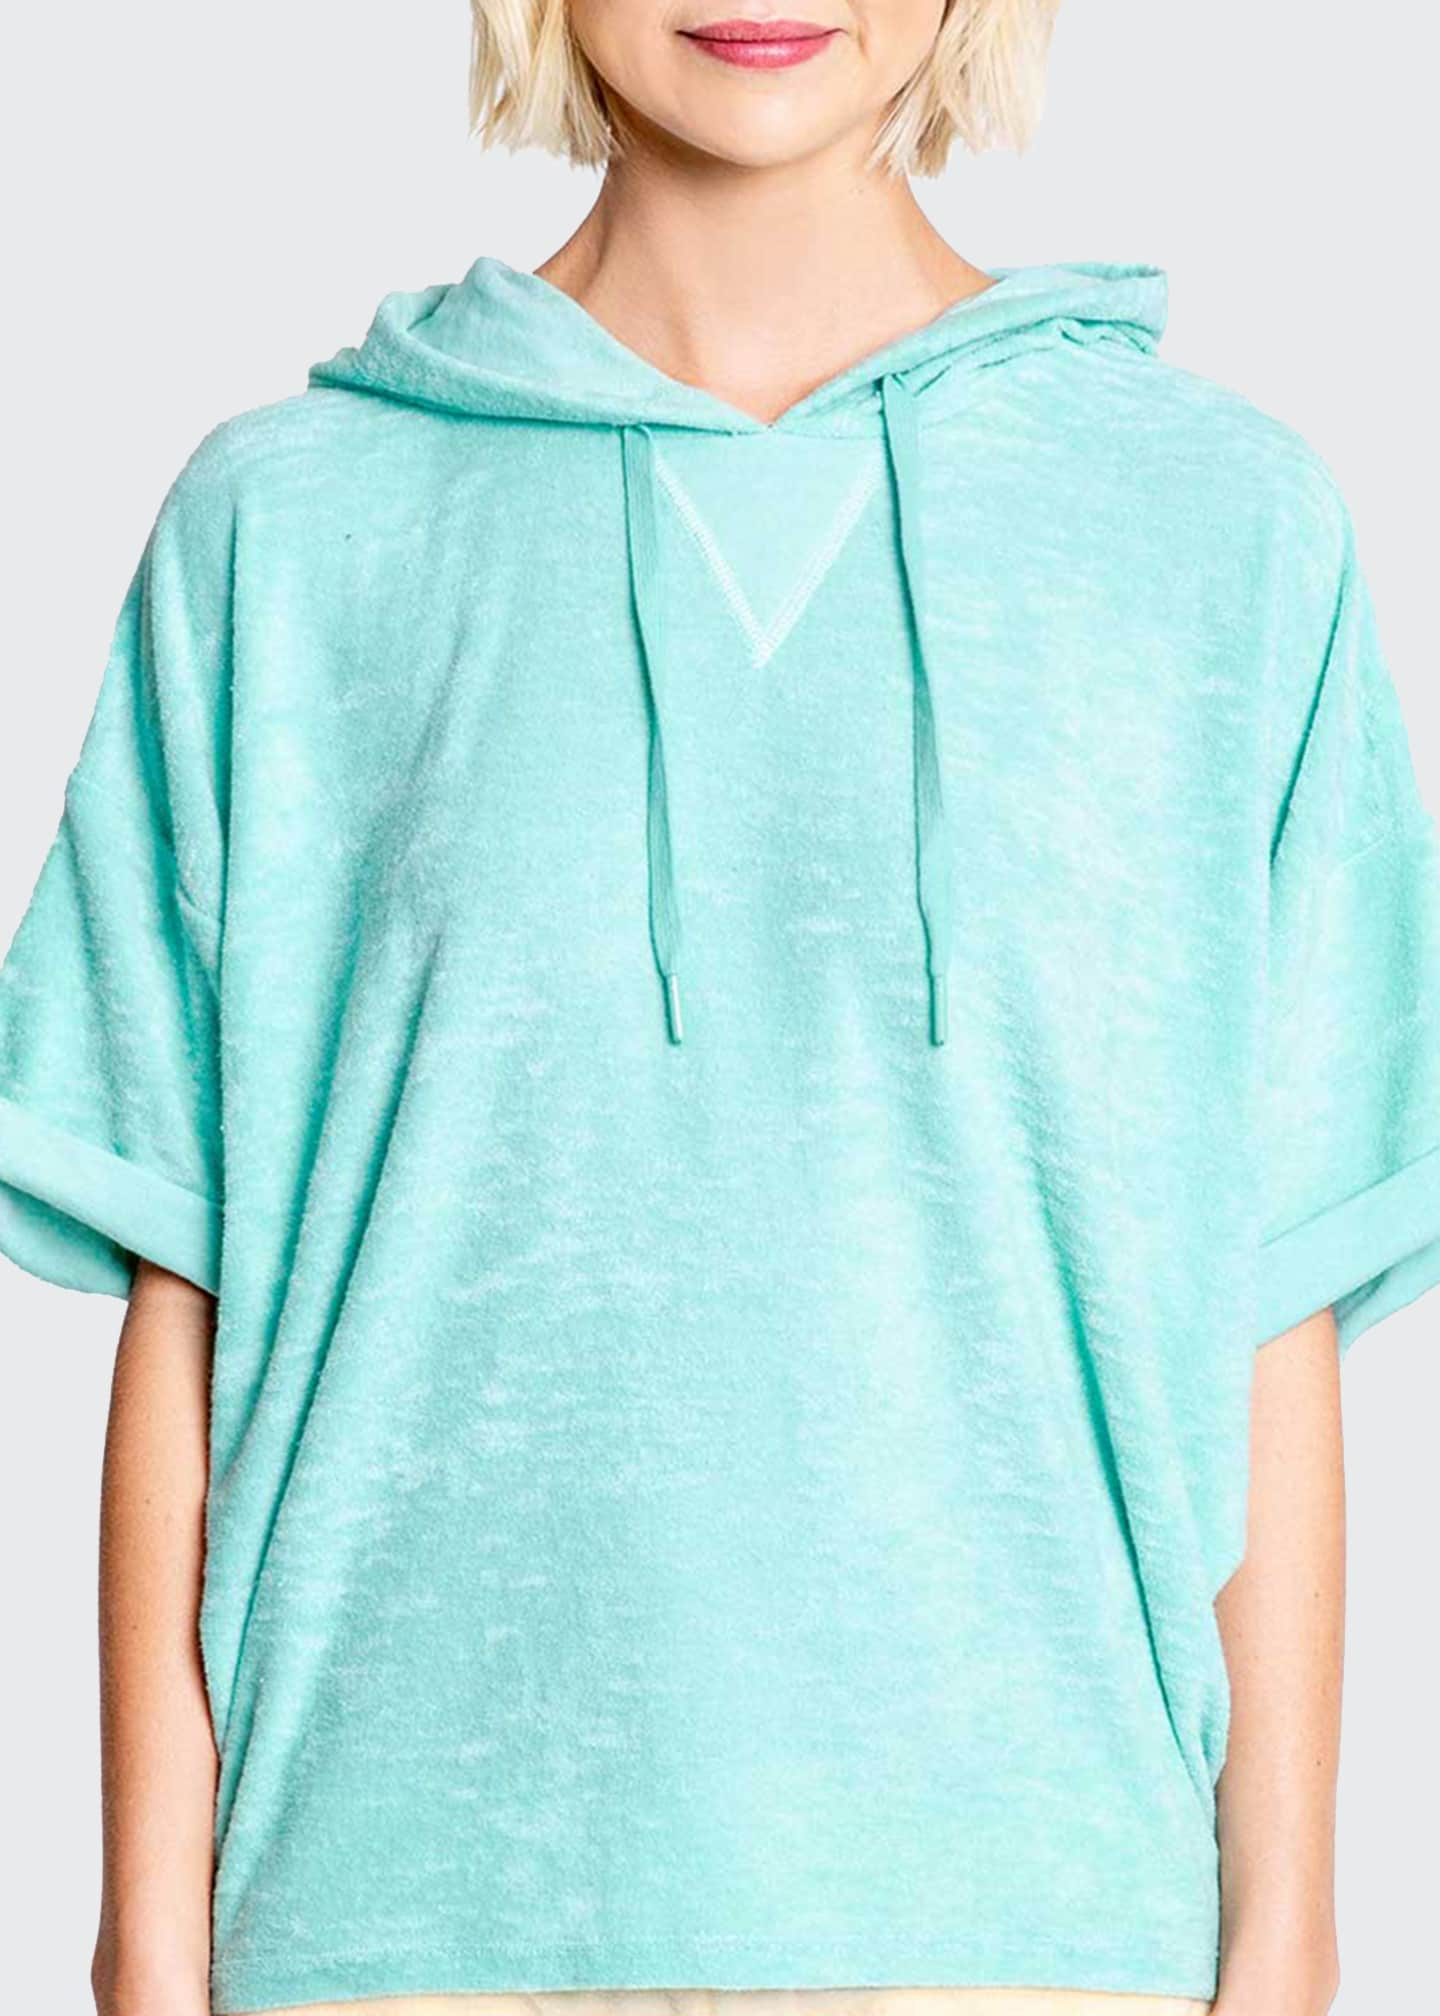 Image 1 of 3: Beach Bound Terry Hooded Top